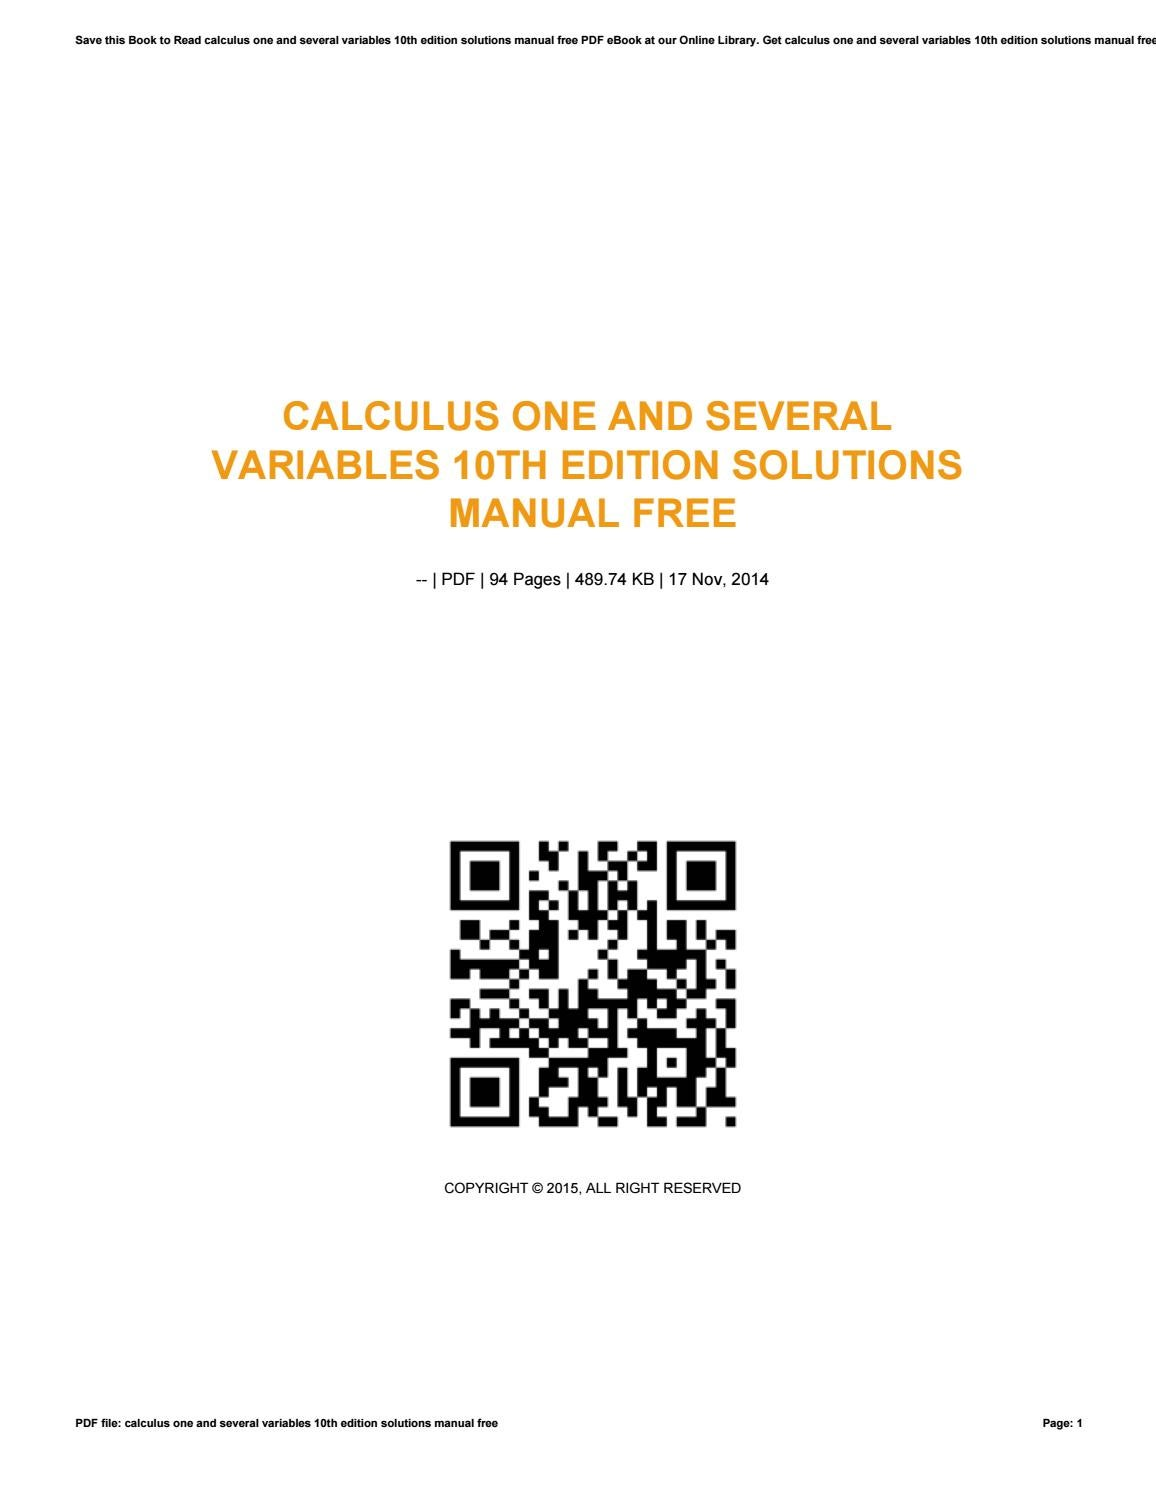 Calculus one and several variables 10th edition solutions manual free by  vssms147 - issuu